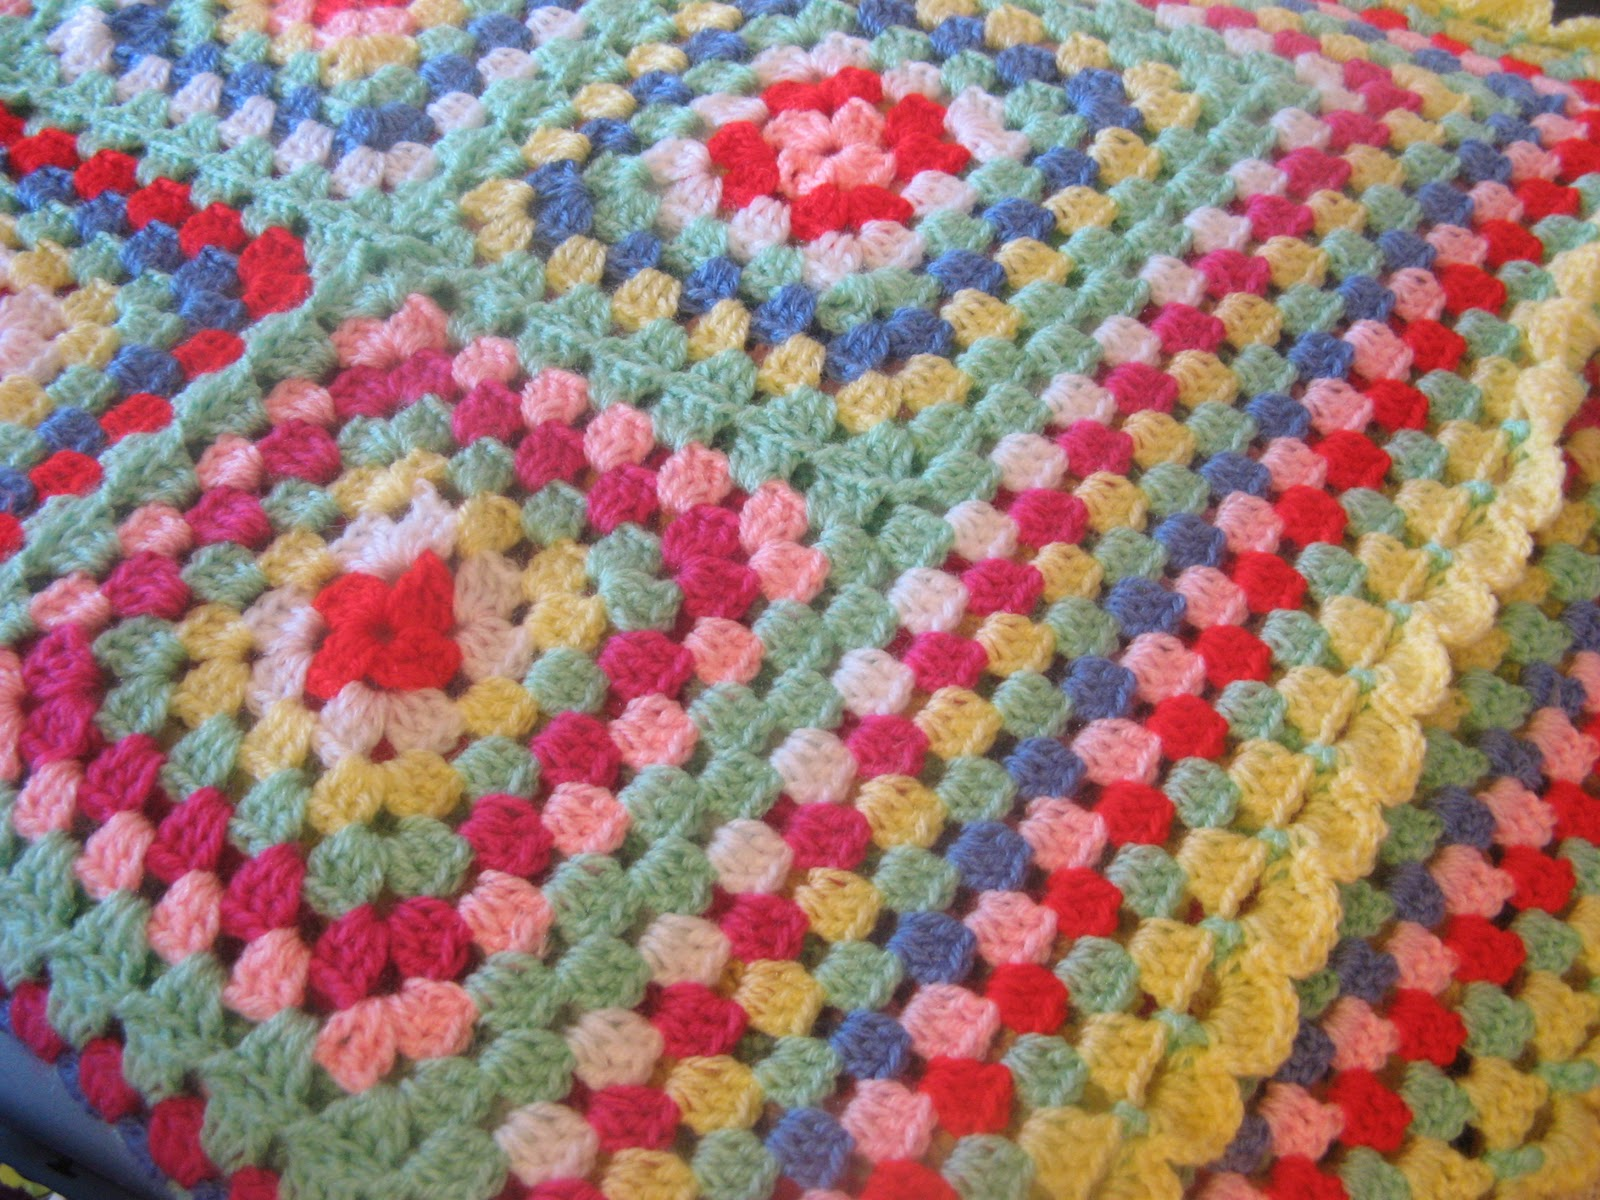 Crocheting Names On Blankets : Helens Colourful Crochet Blankets: A crochet blanket pressie for ...